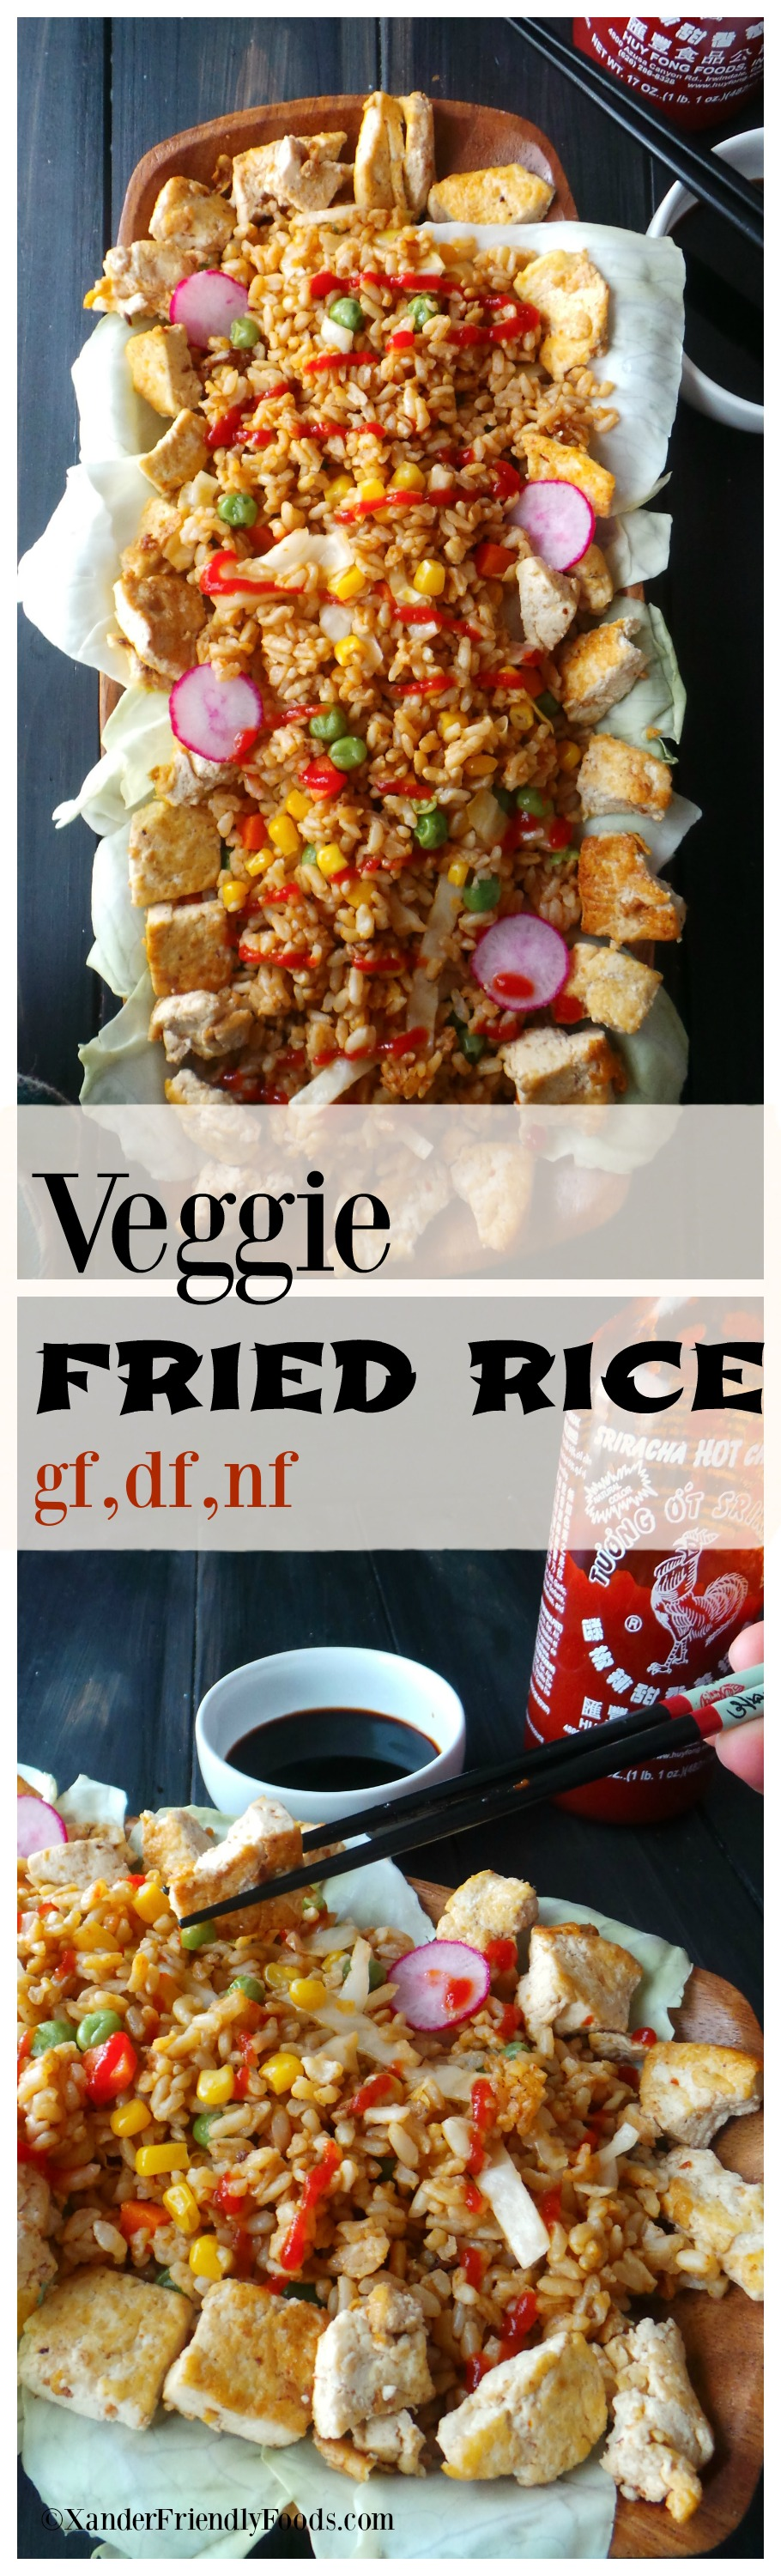 FriedRice Collage